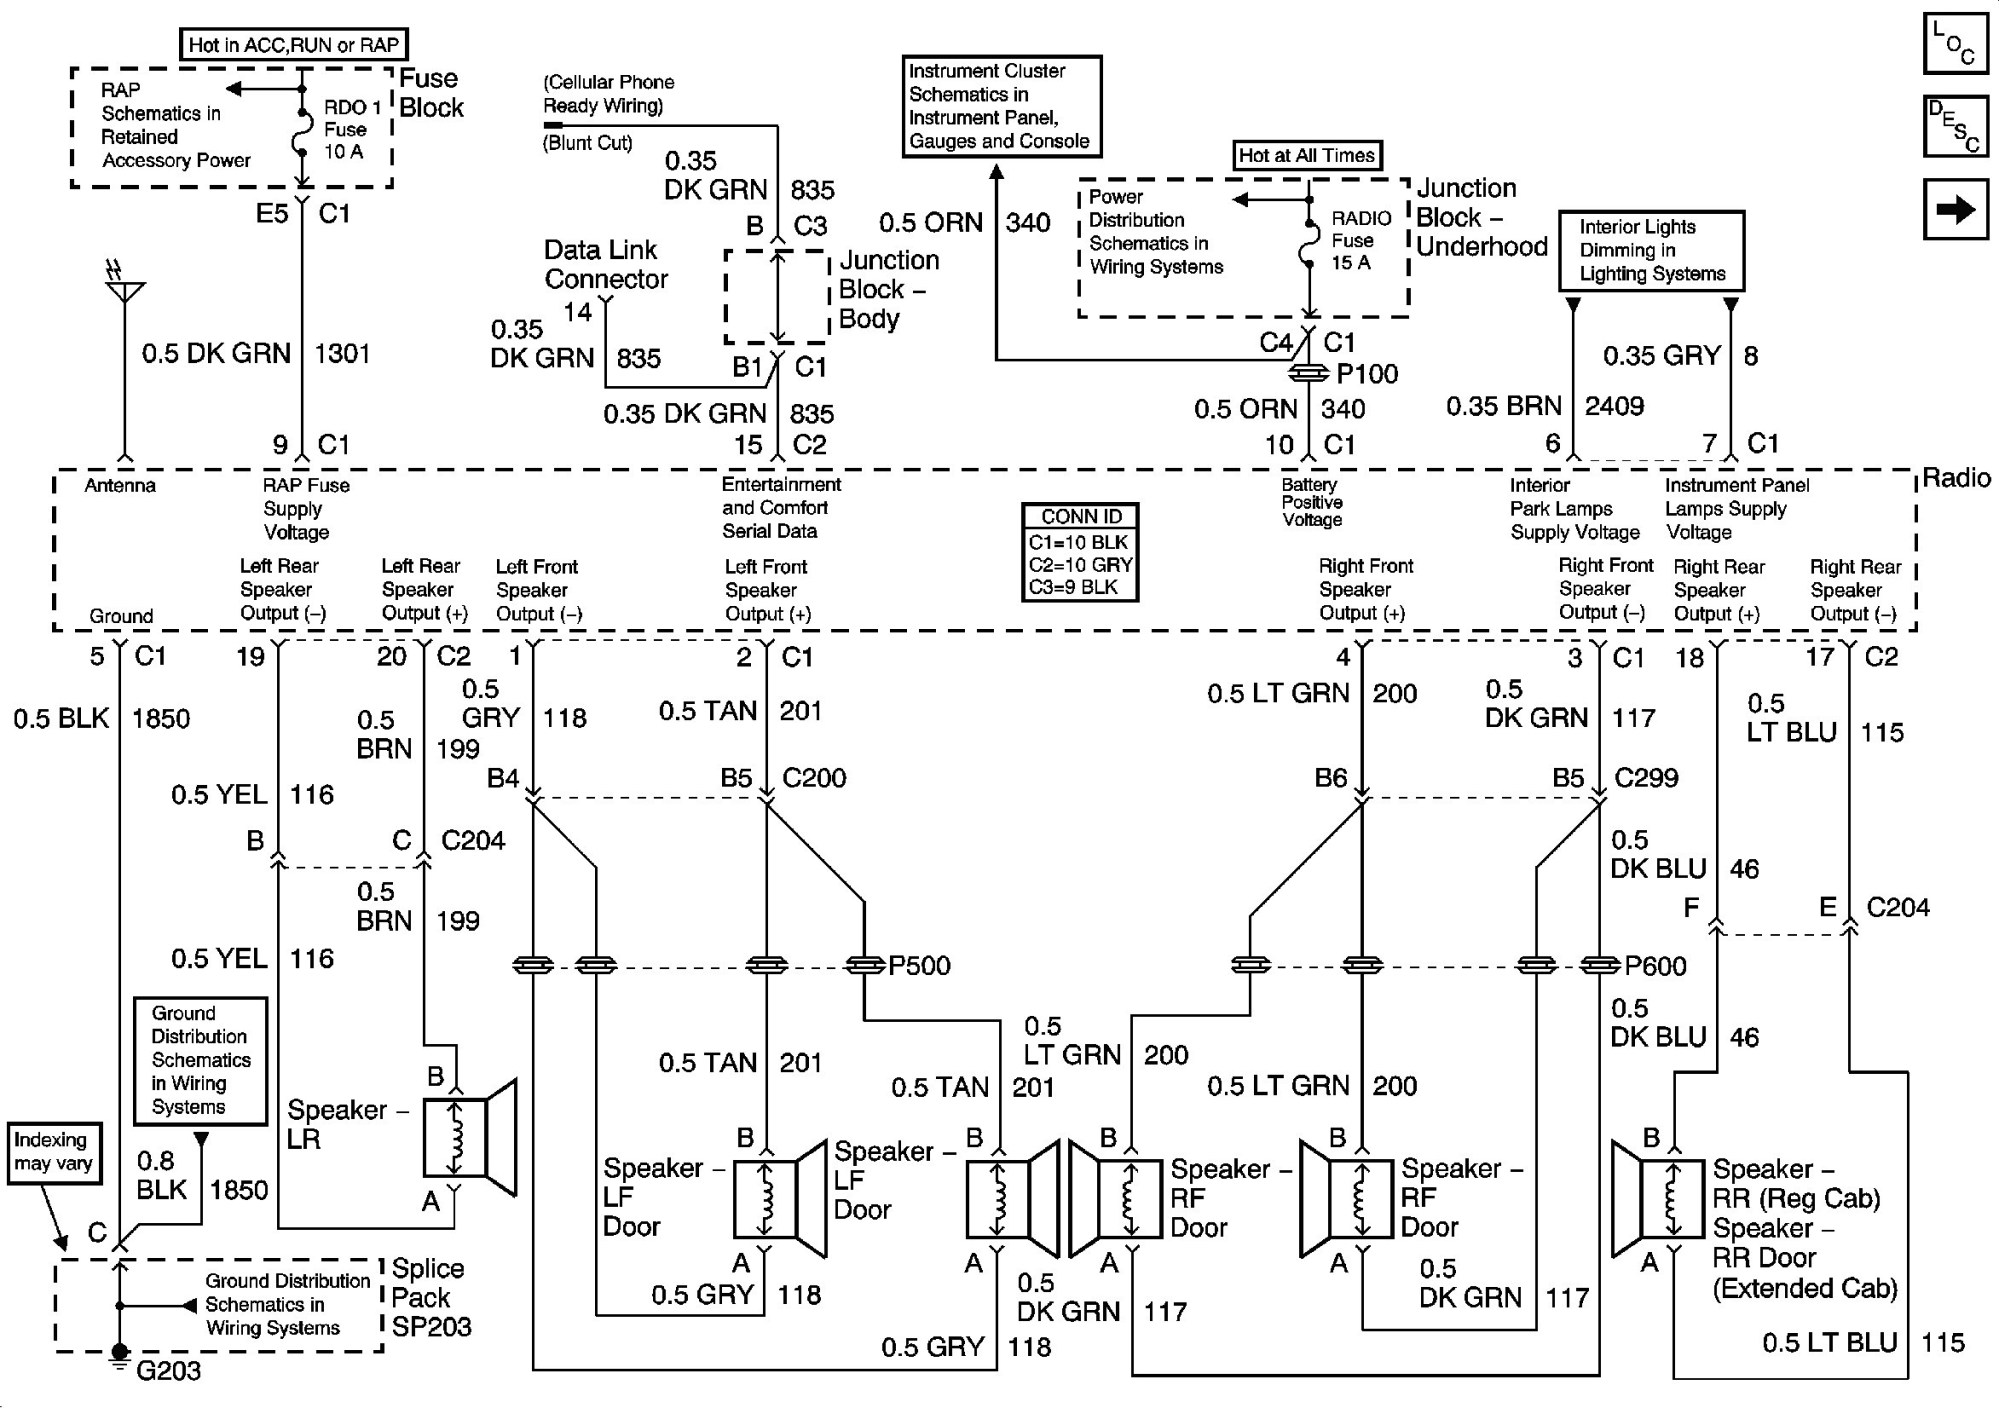 hight resolution of chevrolet venture wiring diagram wiring diagram paper2003 chevy venture wiring diagram wiring diagram paper chevy venture